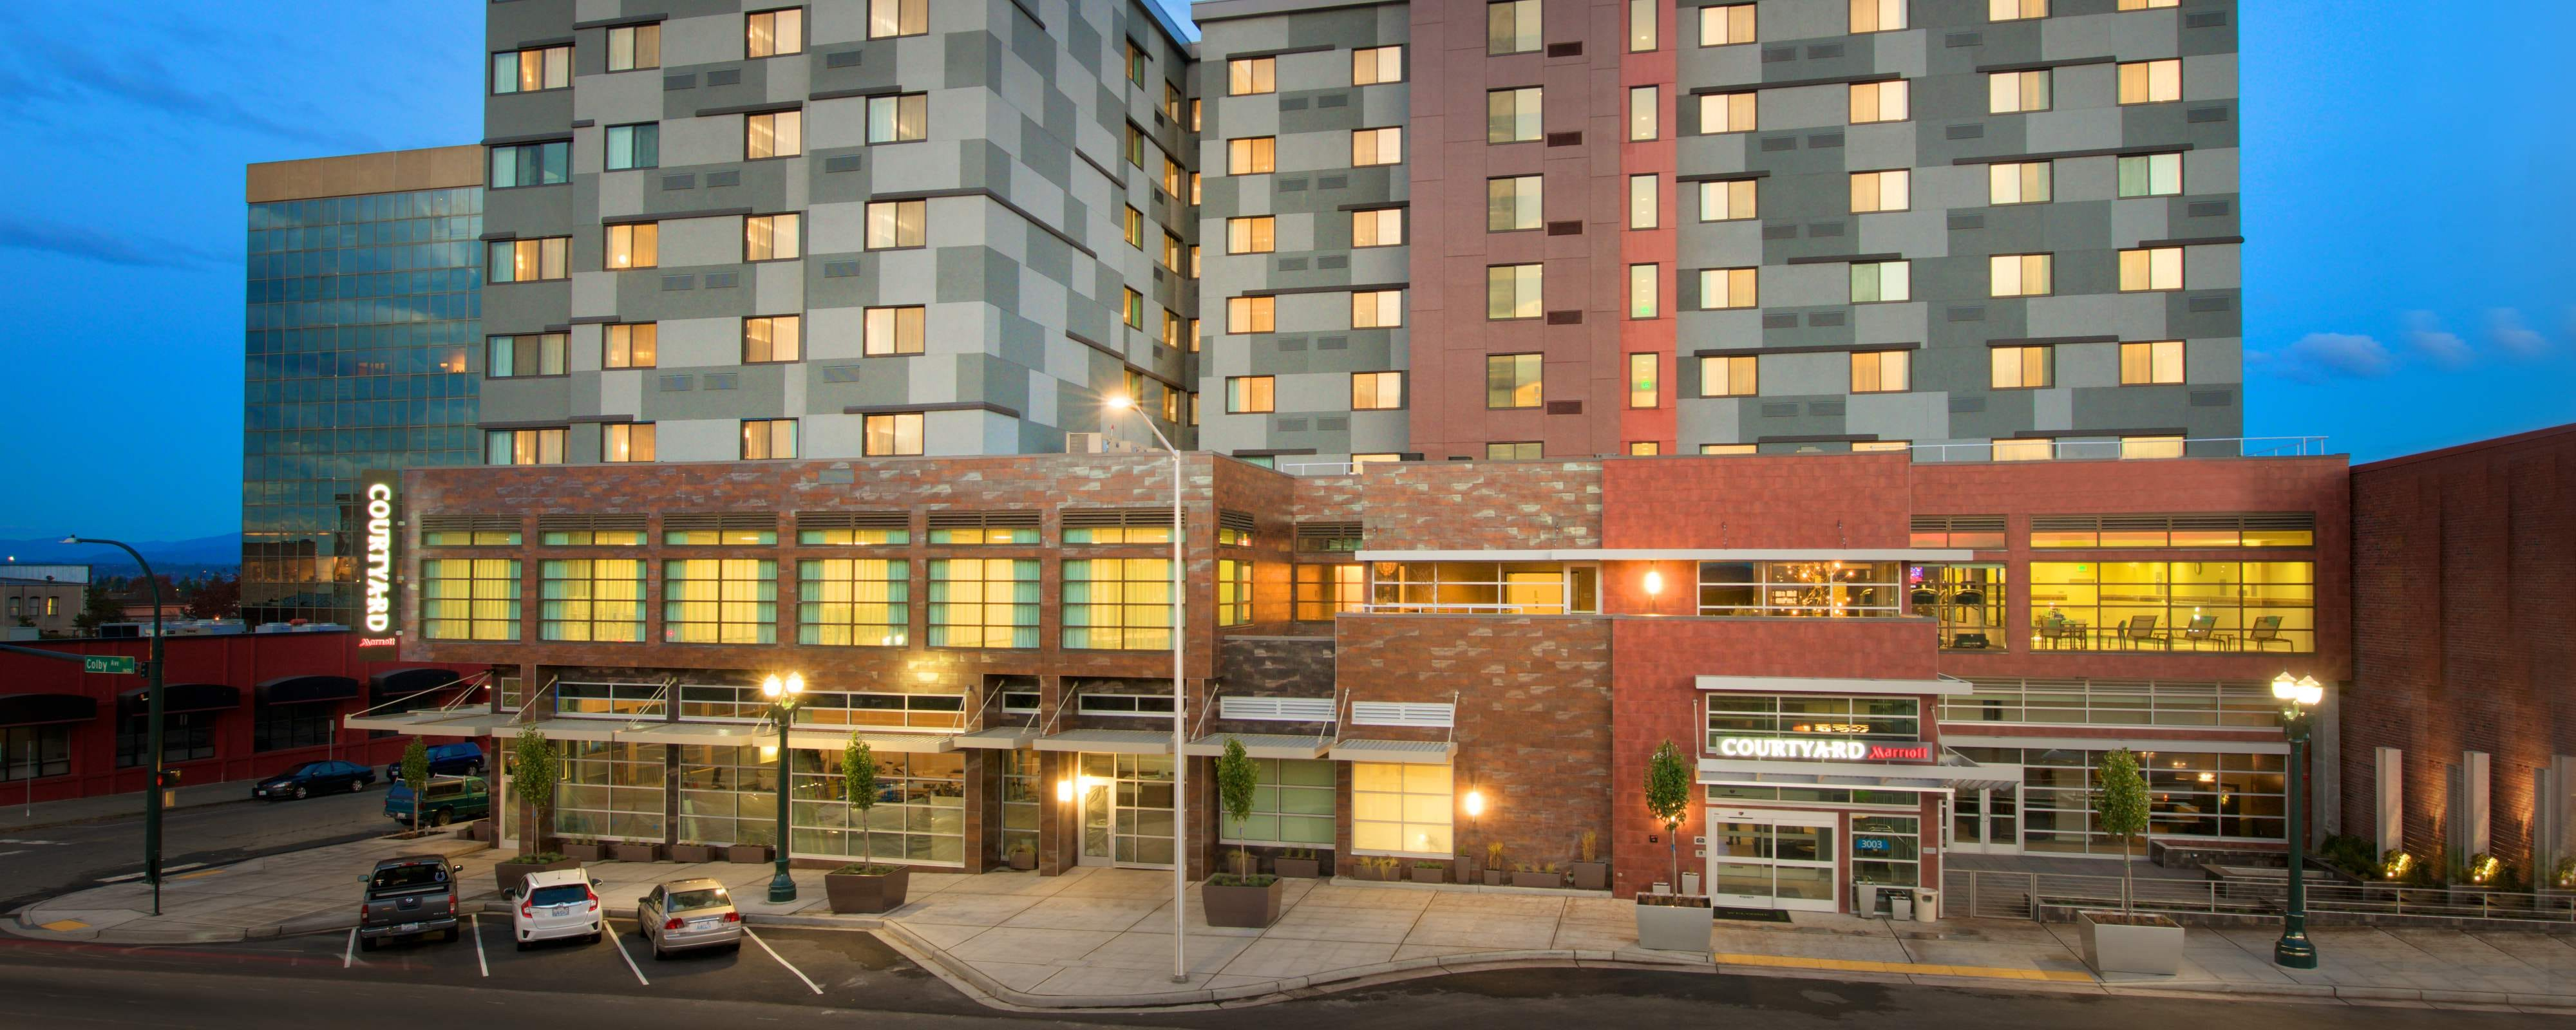 Downtown Everett, WA, Hotel | Courtyard